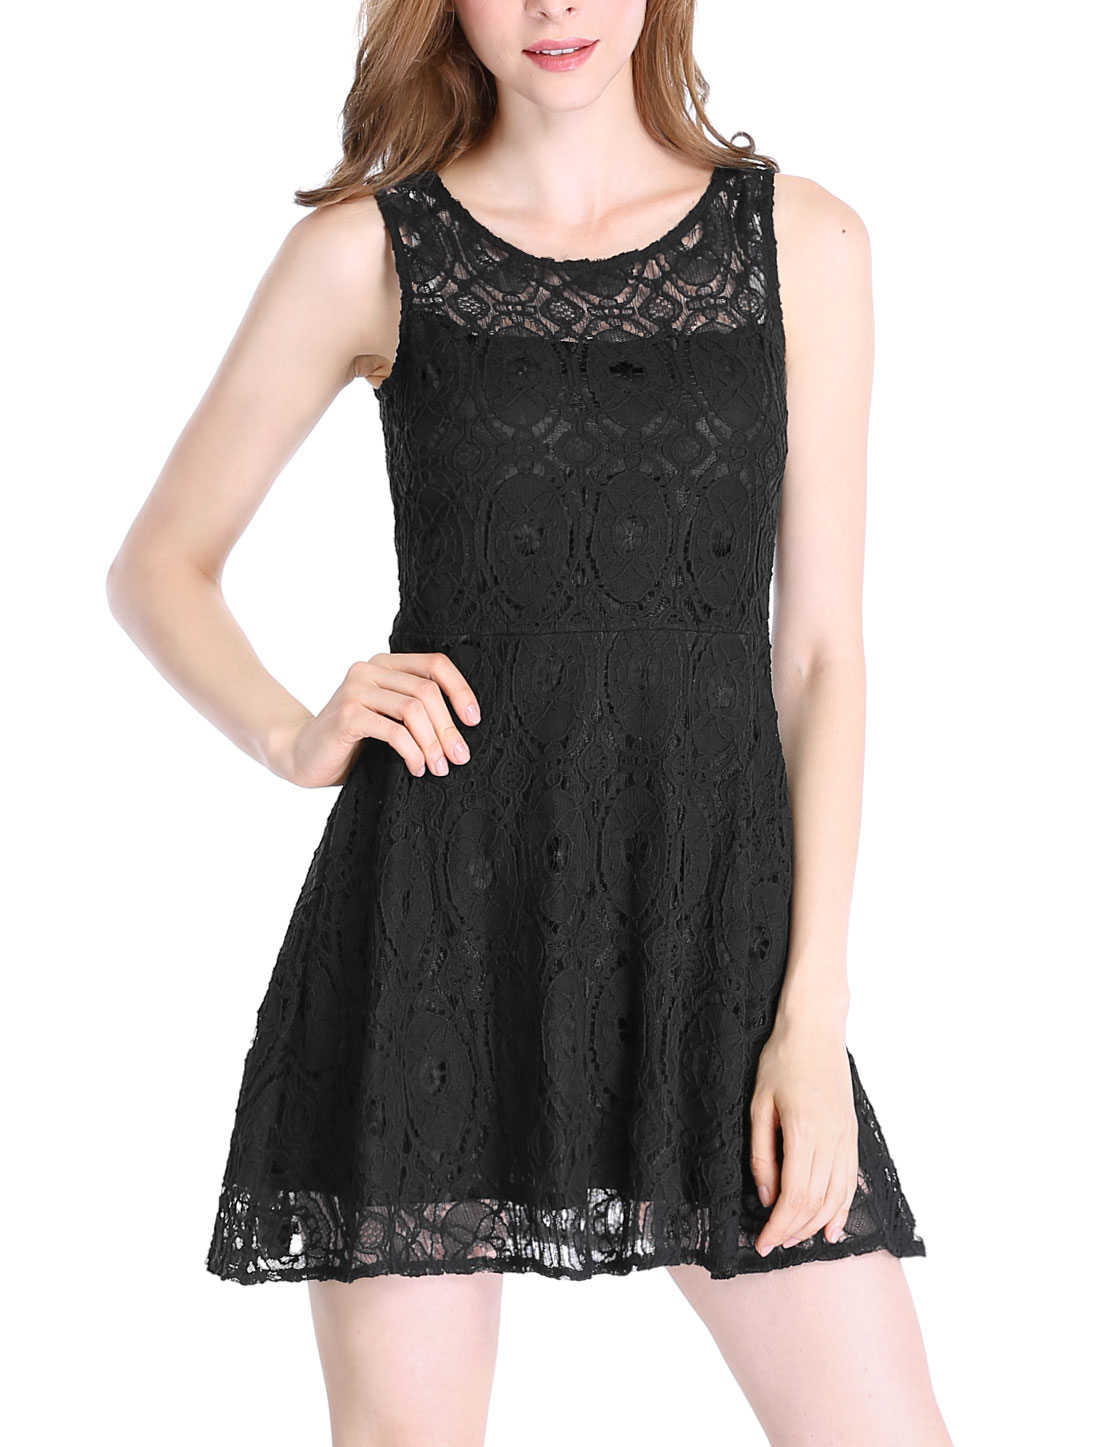 Women Sleeveless Bateau Neck Floral Lace Flare Dress Black L